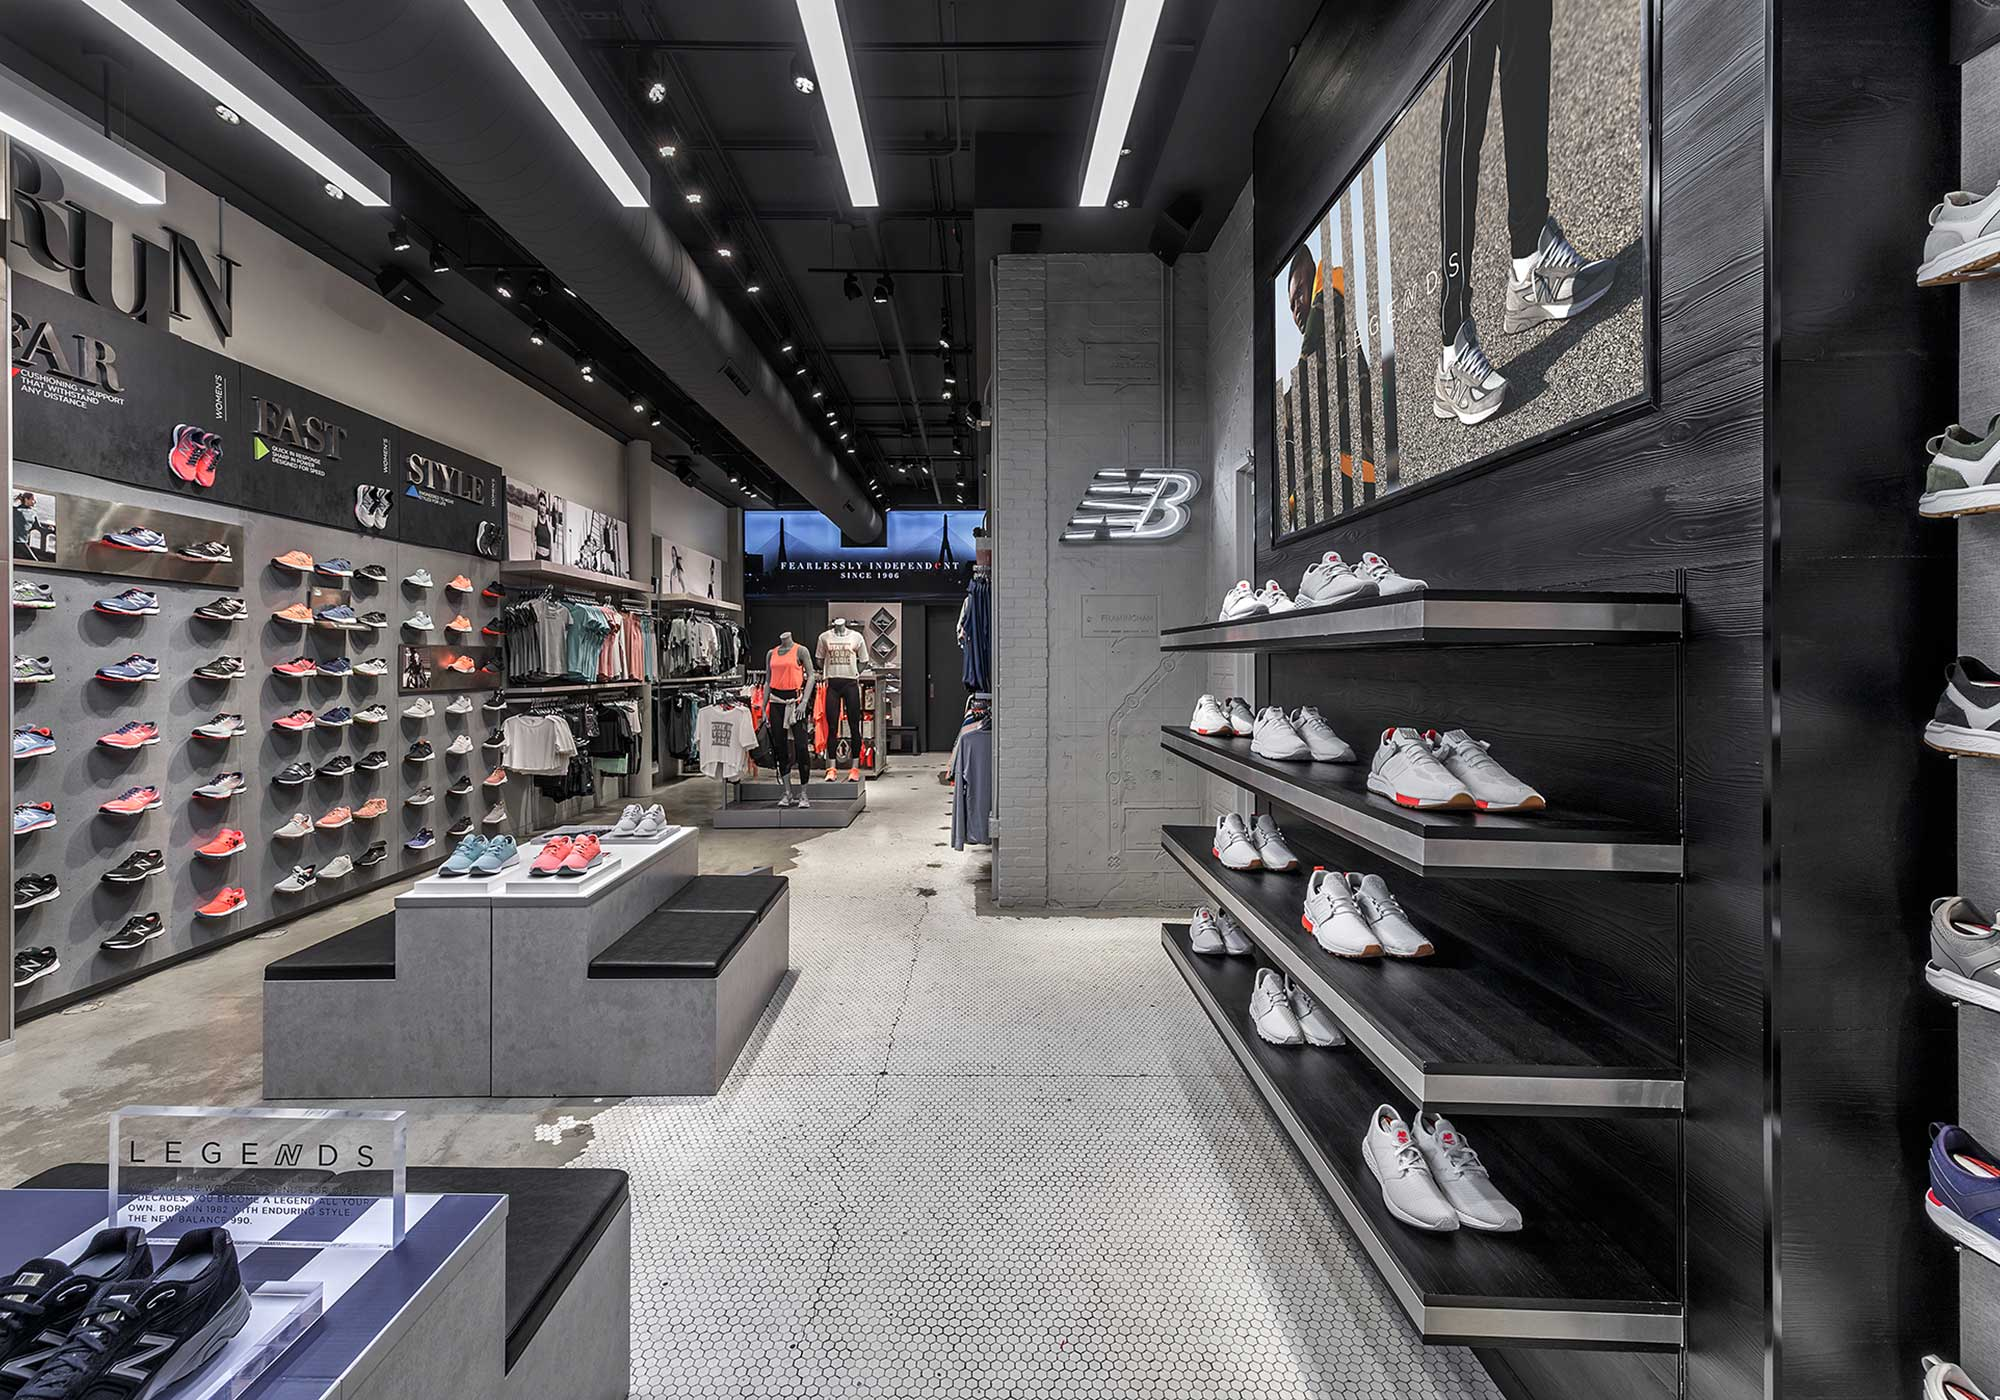 Walls with rows of shoes displayed on them